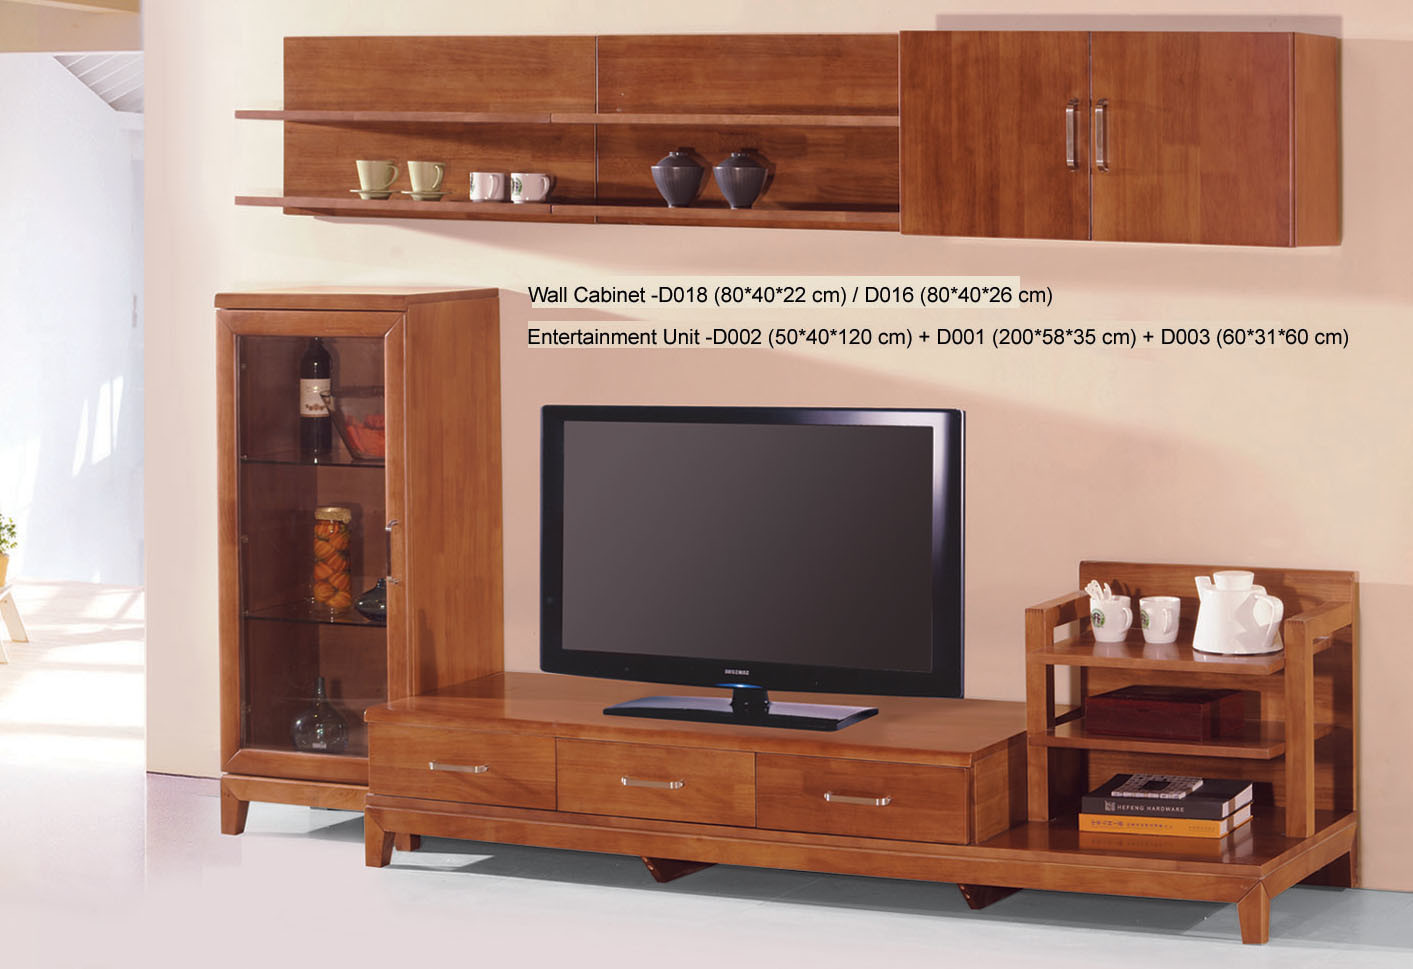 China TV Unit Stand Wall Cabinet D018 D016 D002